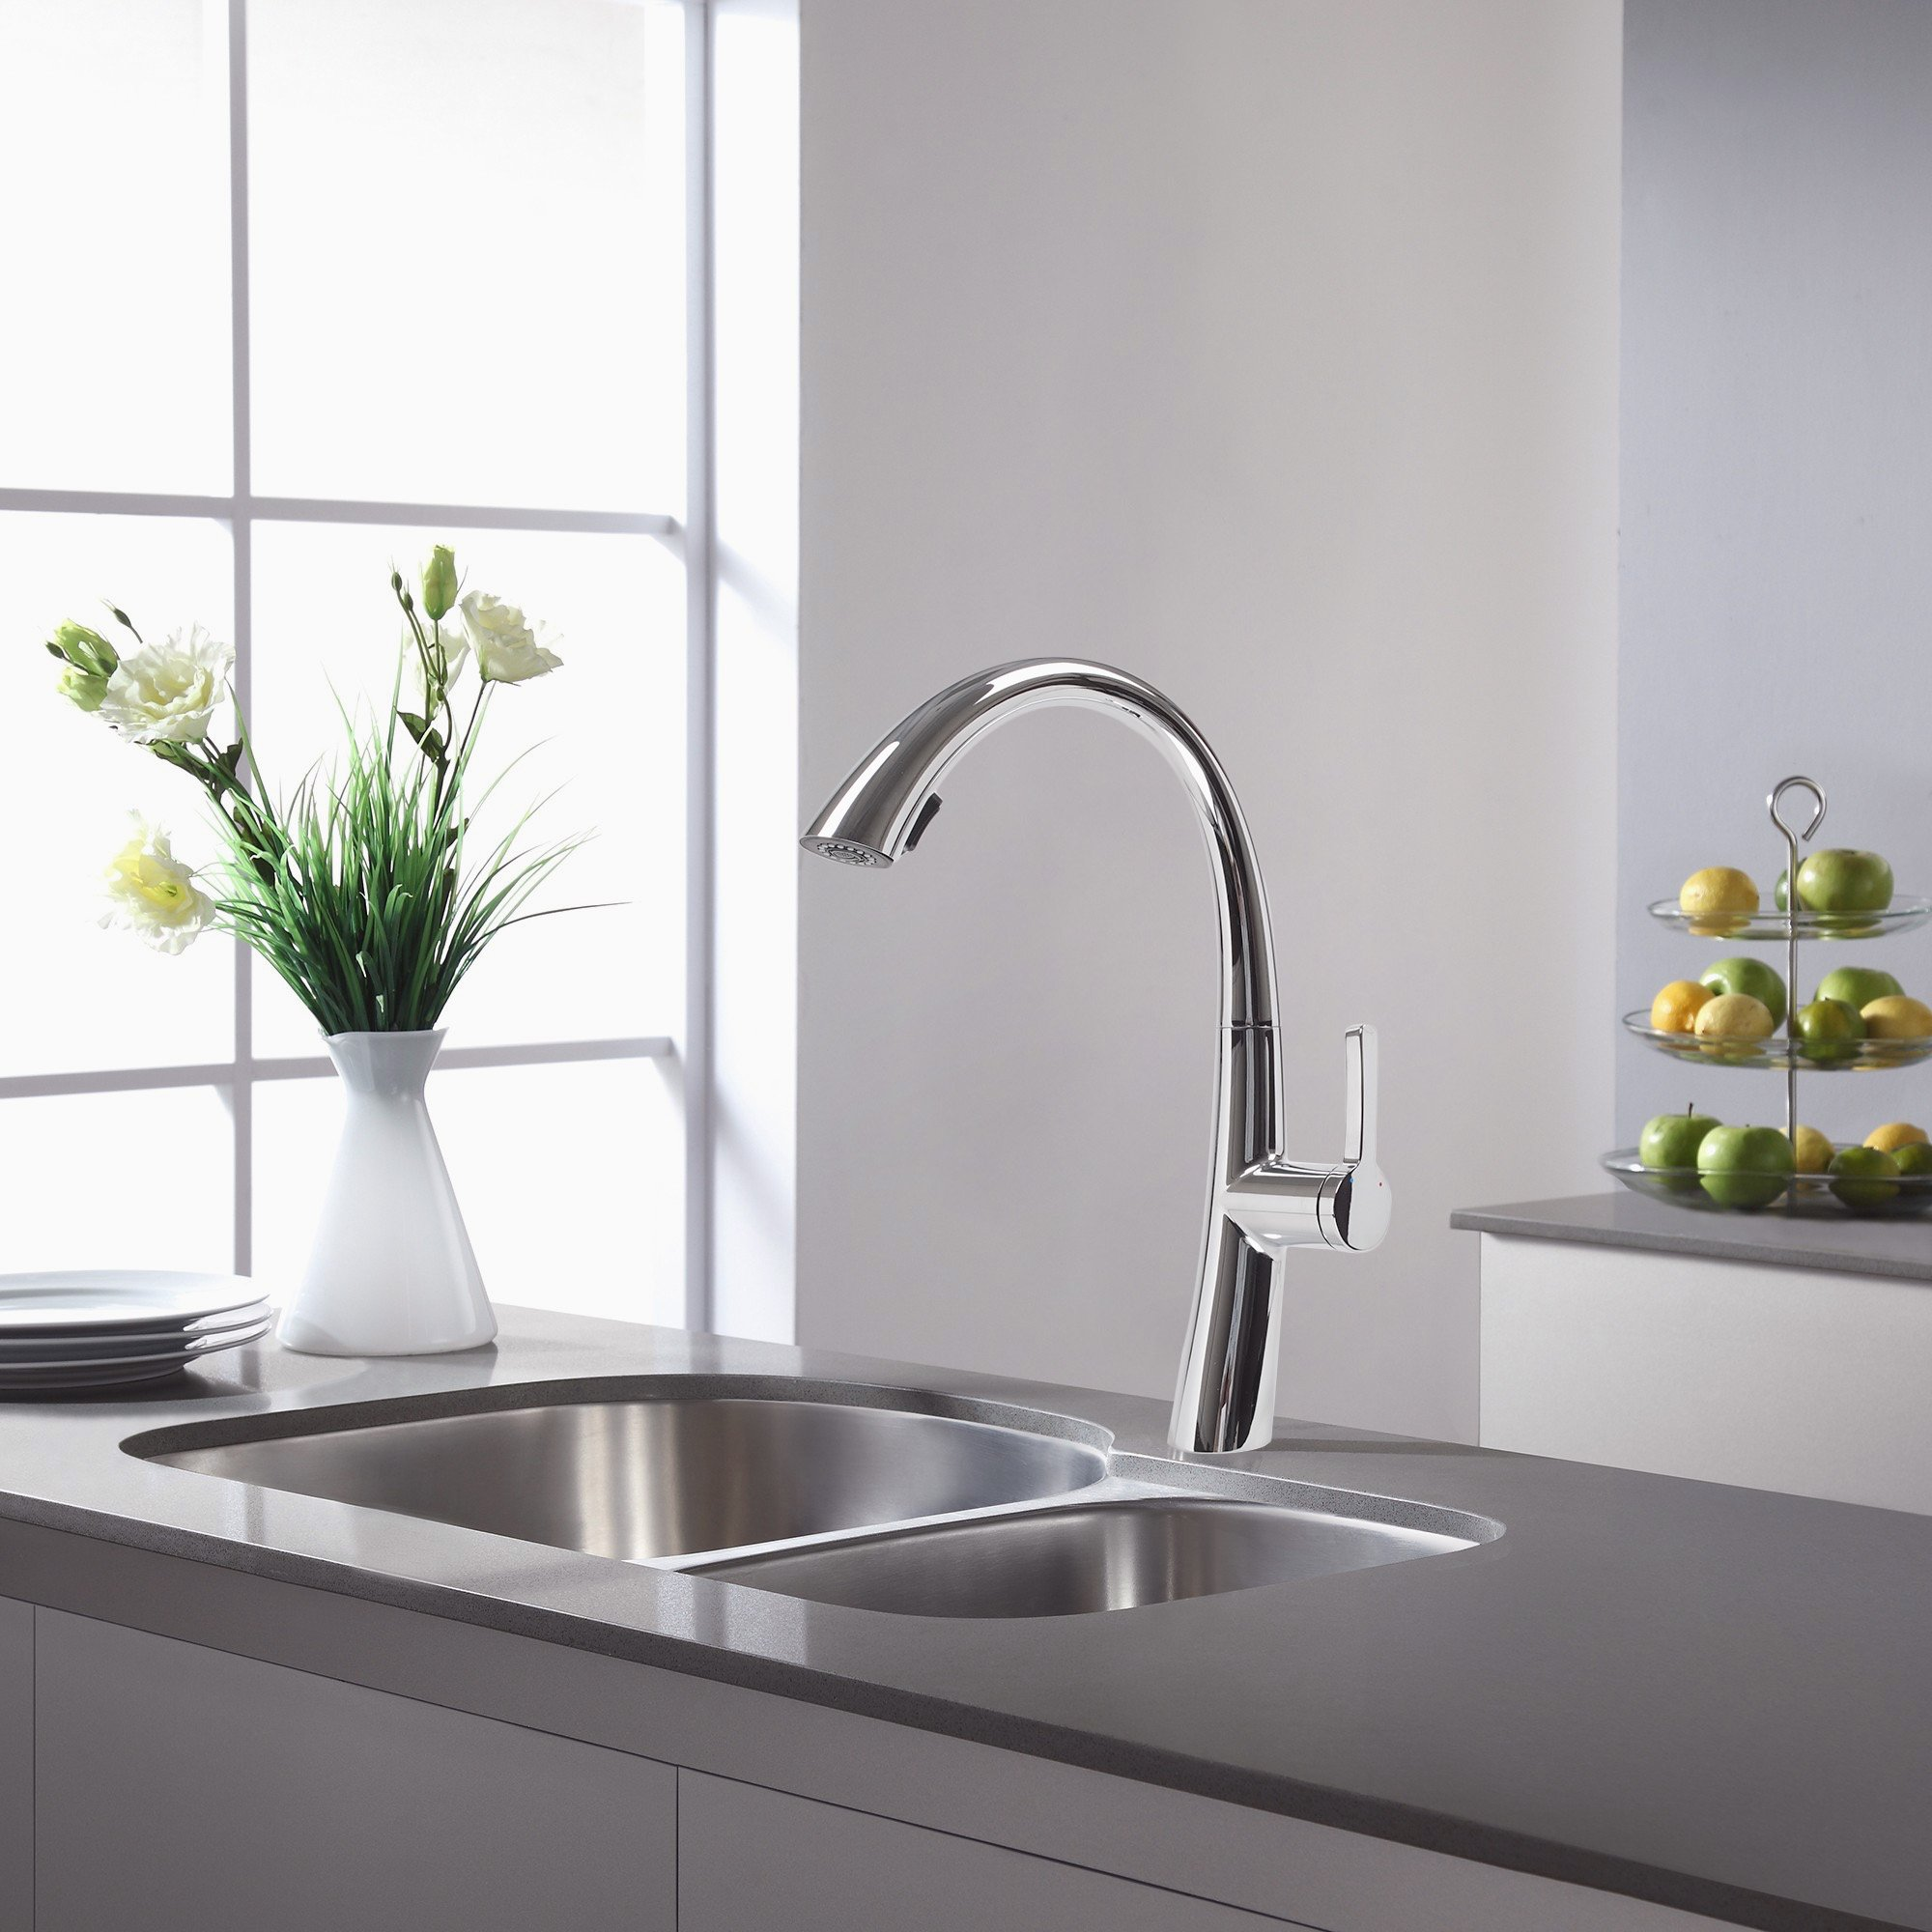 Cosmo COS-KF863C Modern Luxury High Arc Pull-Down Tap Mixer Kitchen Faucet, Chrome by Cosmo (Image #7)